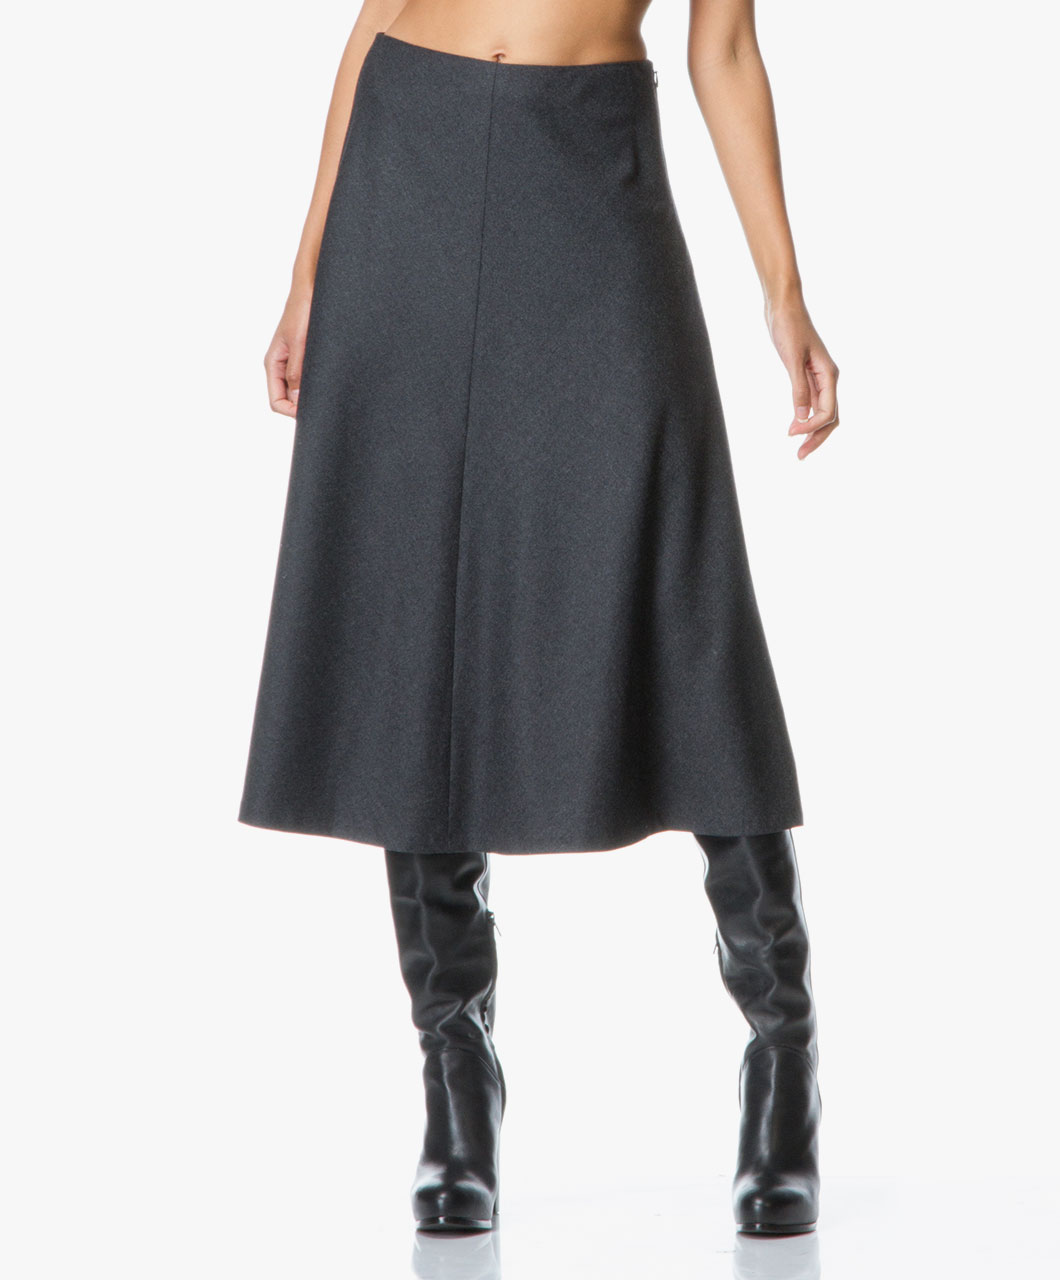 Theory Uthema Flared Skirt in Pure Flannel - Dark Charcoal - Theory